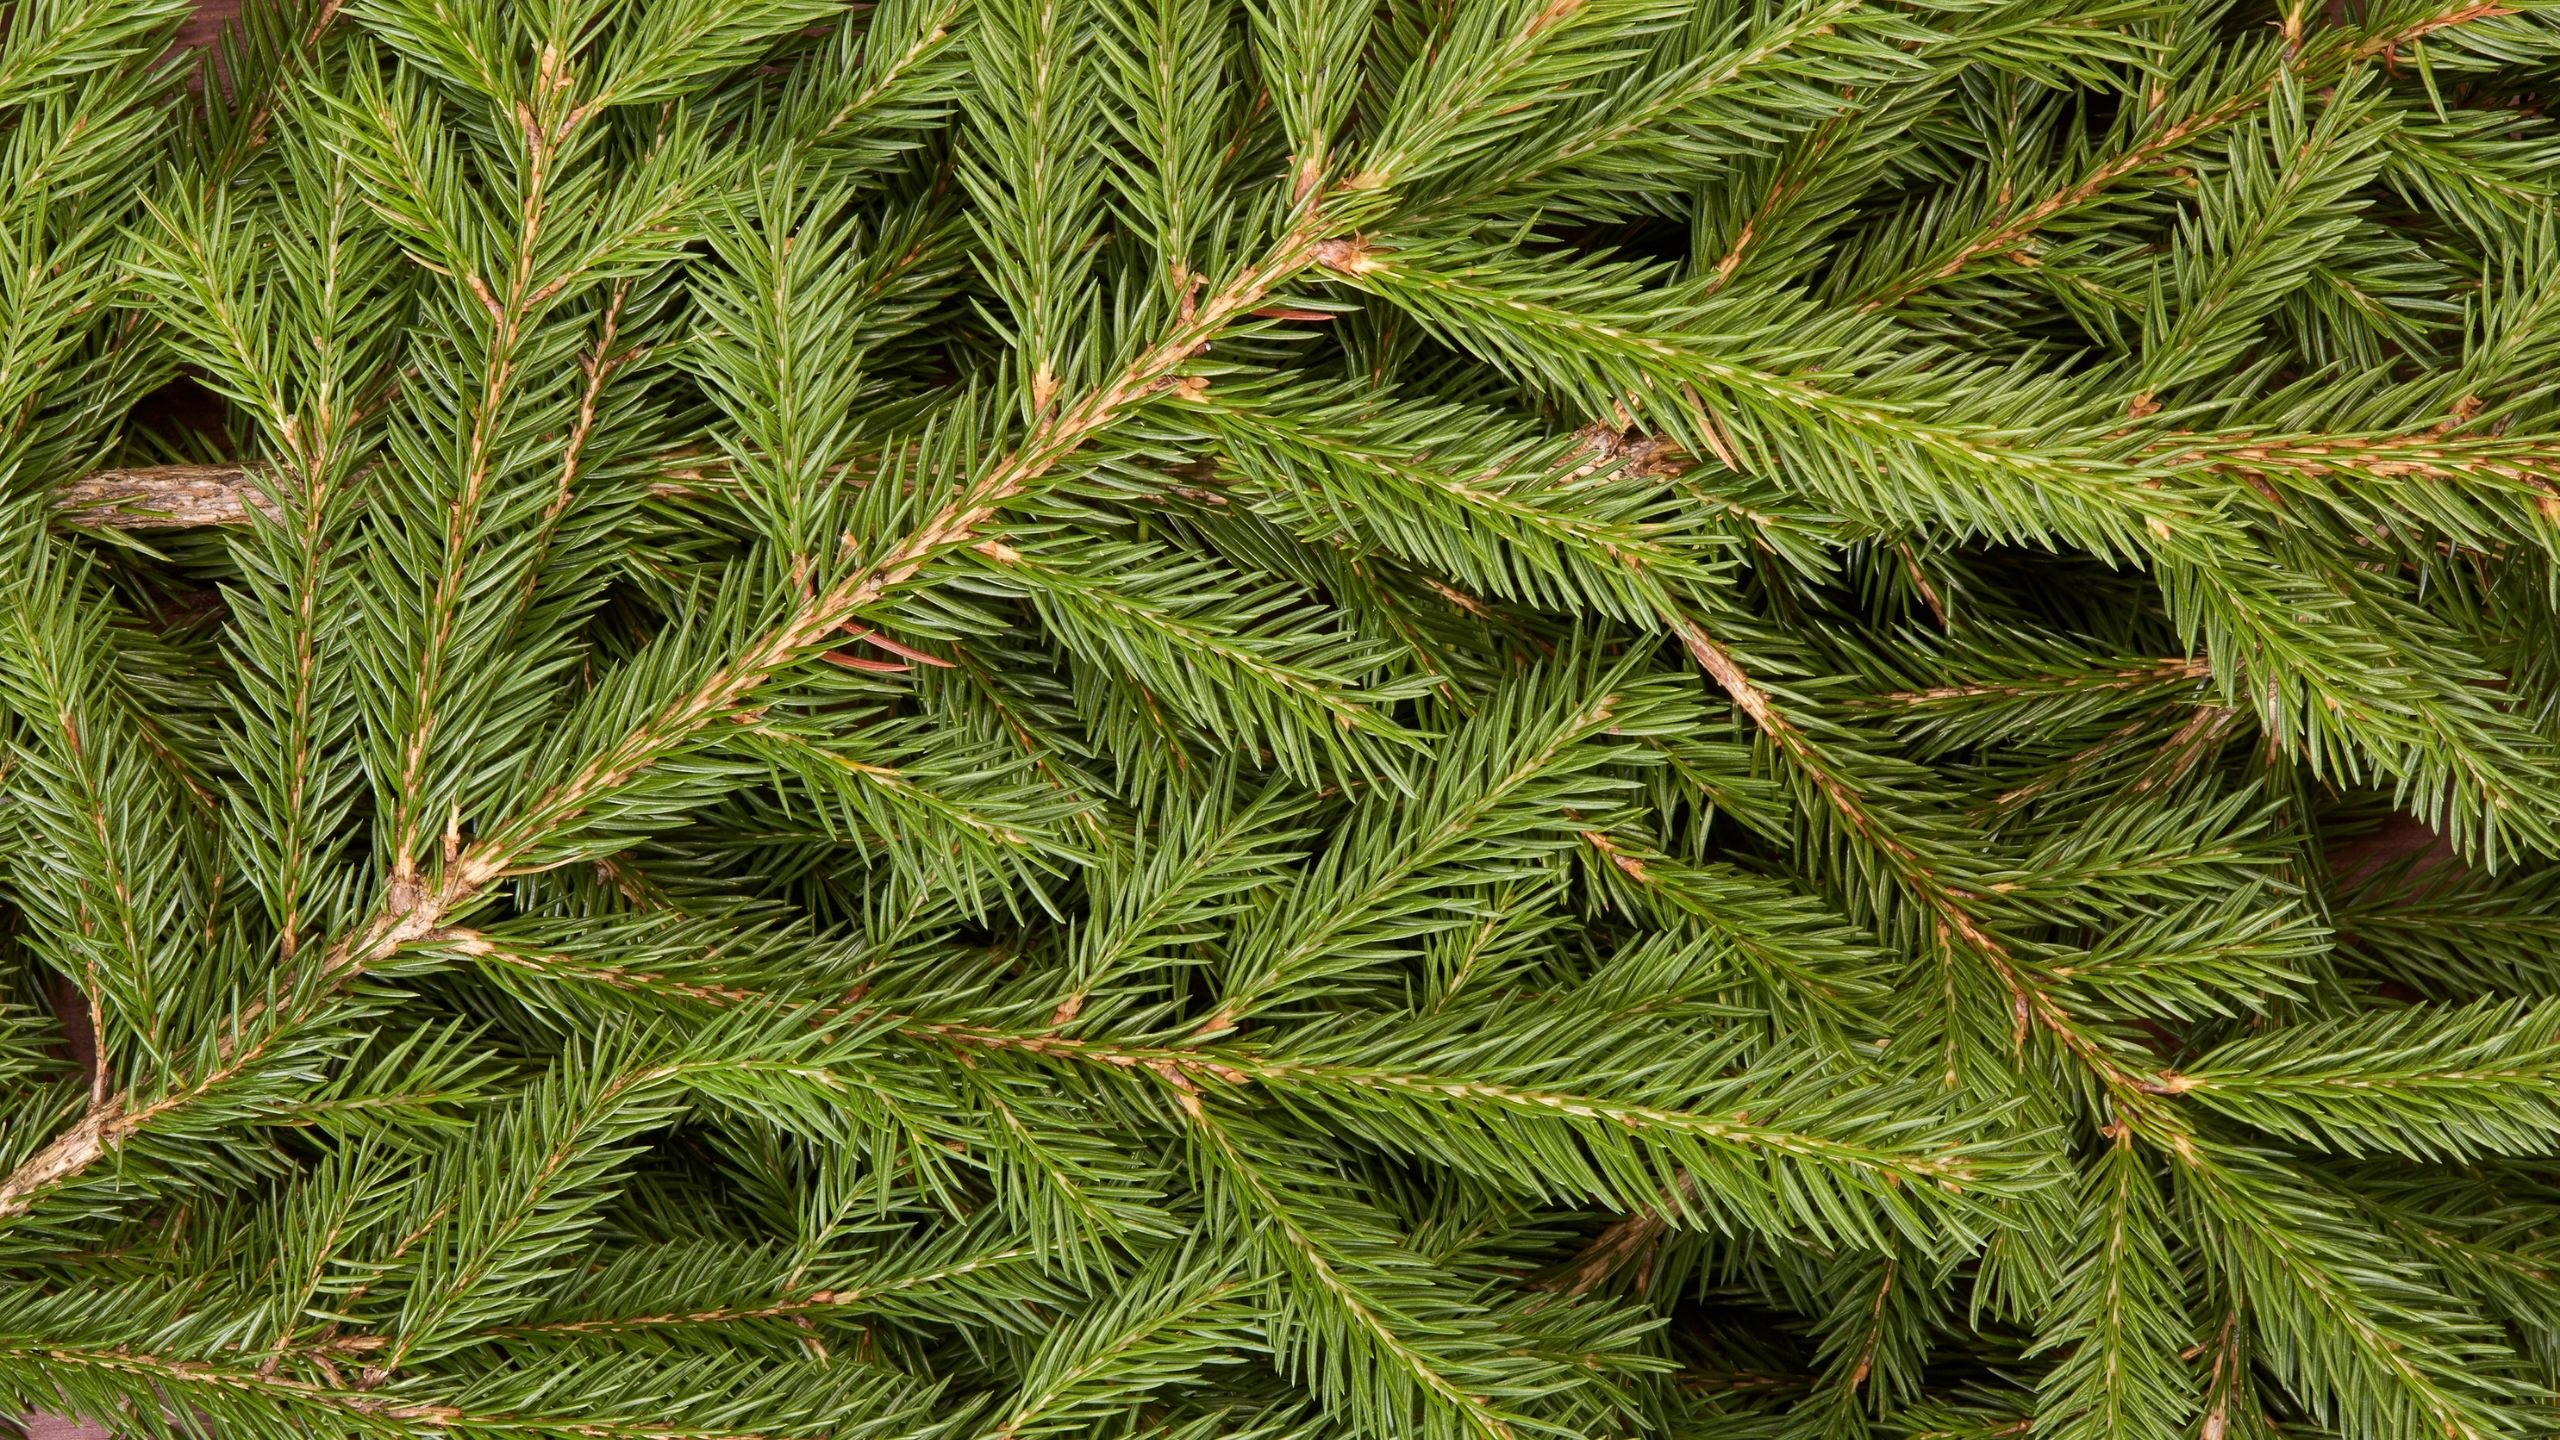 A subalpine fir stand infested with balsam woolly adelgid